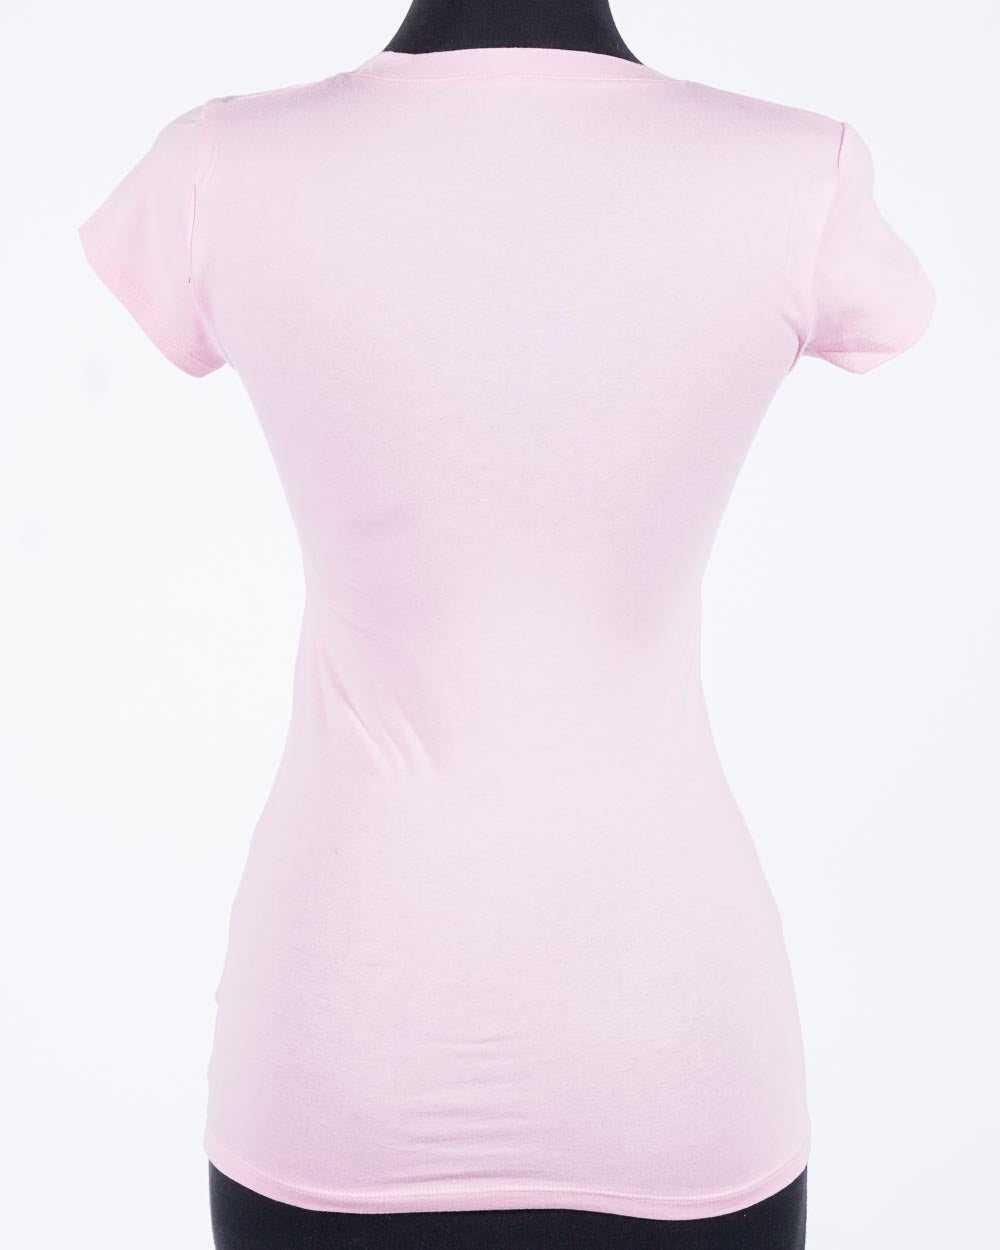 PUSSY v-neck tee, pink/blk